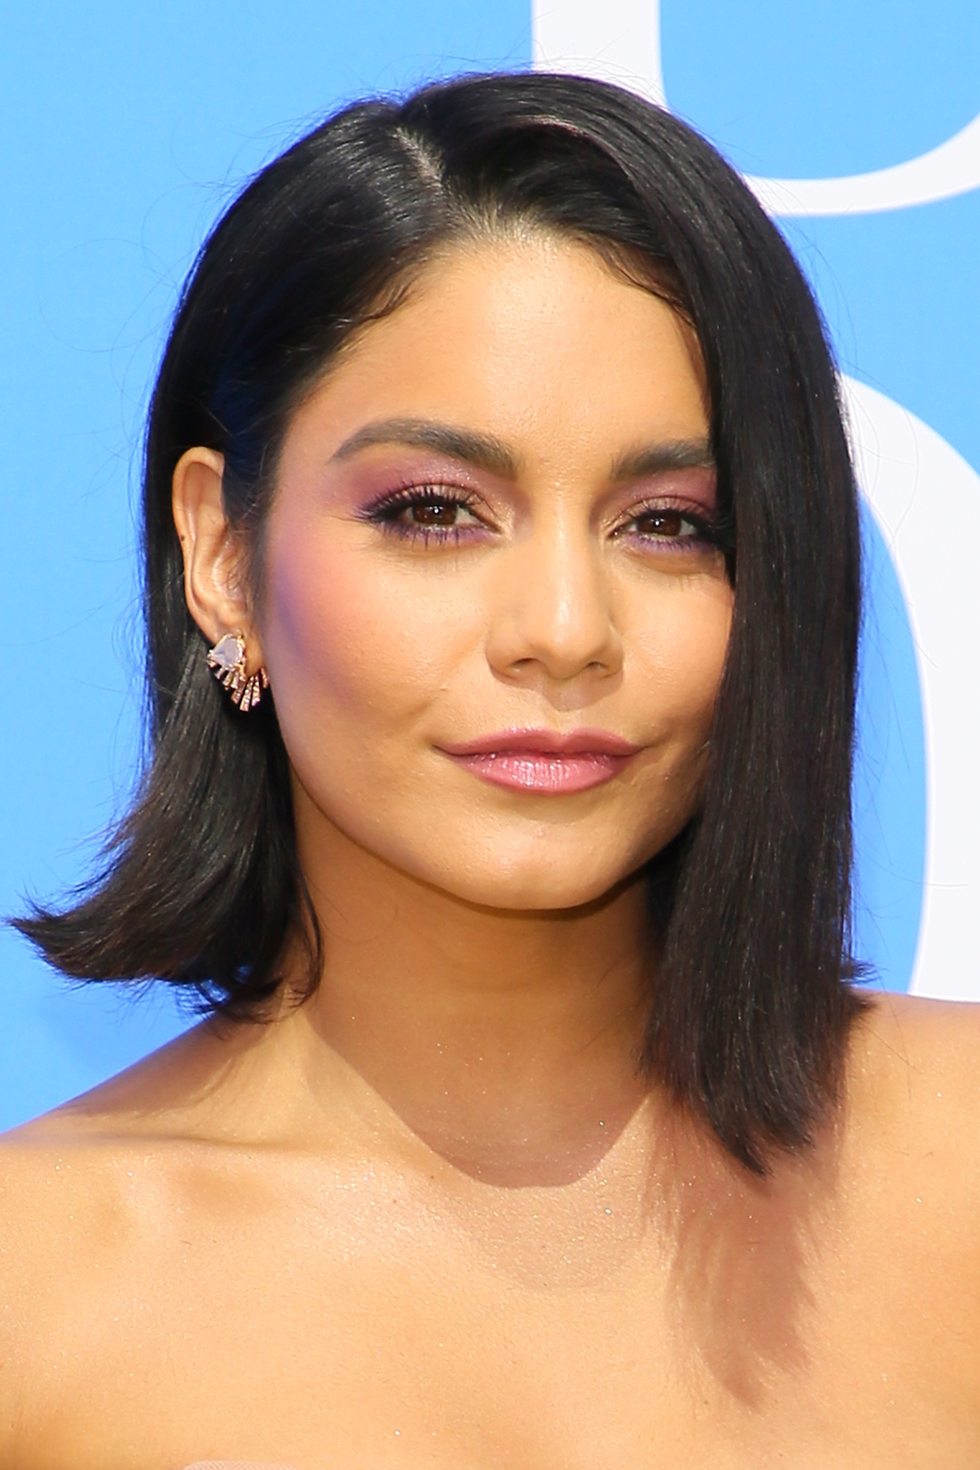 Vanessa Hudgens If you can't decide to go shorter or keep your length, try both! ICYMI: mismatched lengths are in , as shown by Vanessa Hudgens' asymmetrical lob.